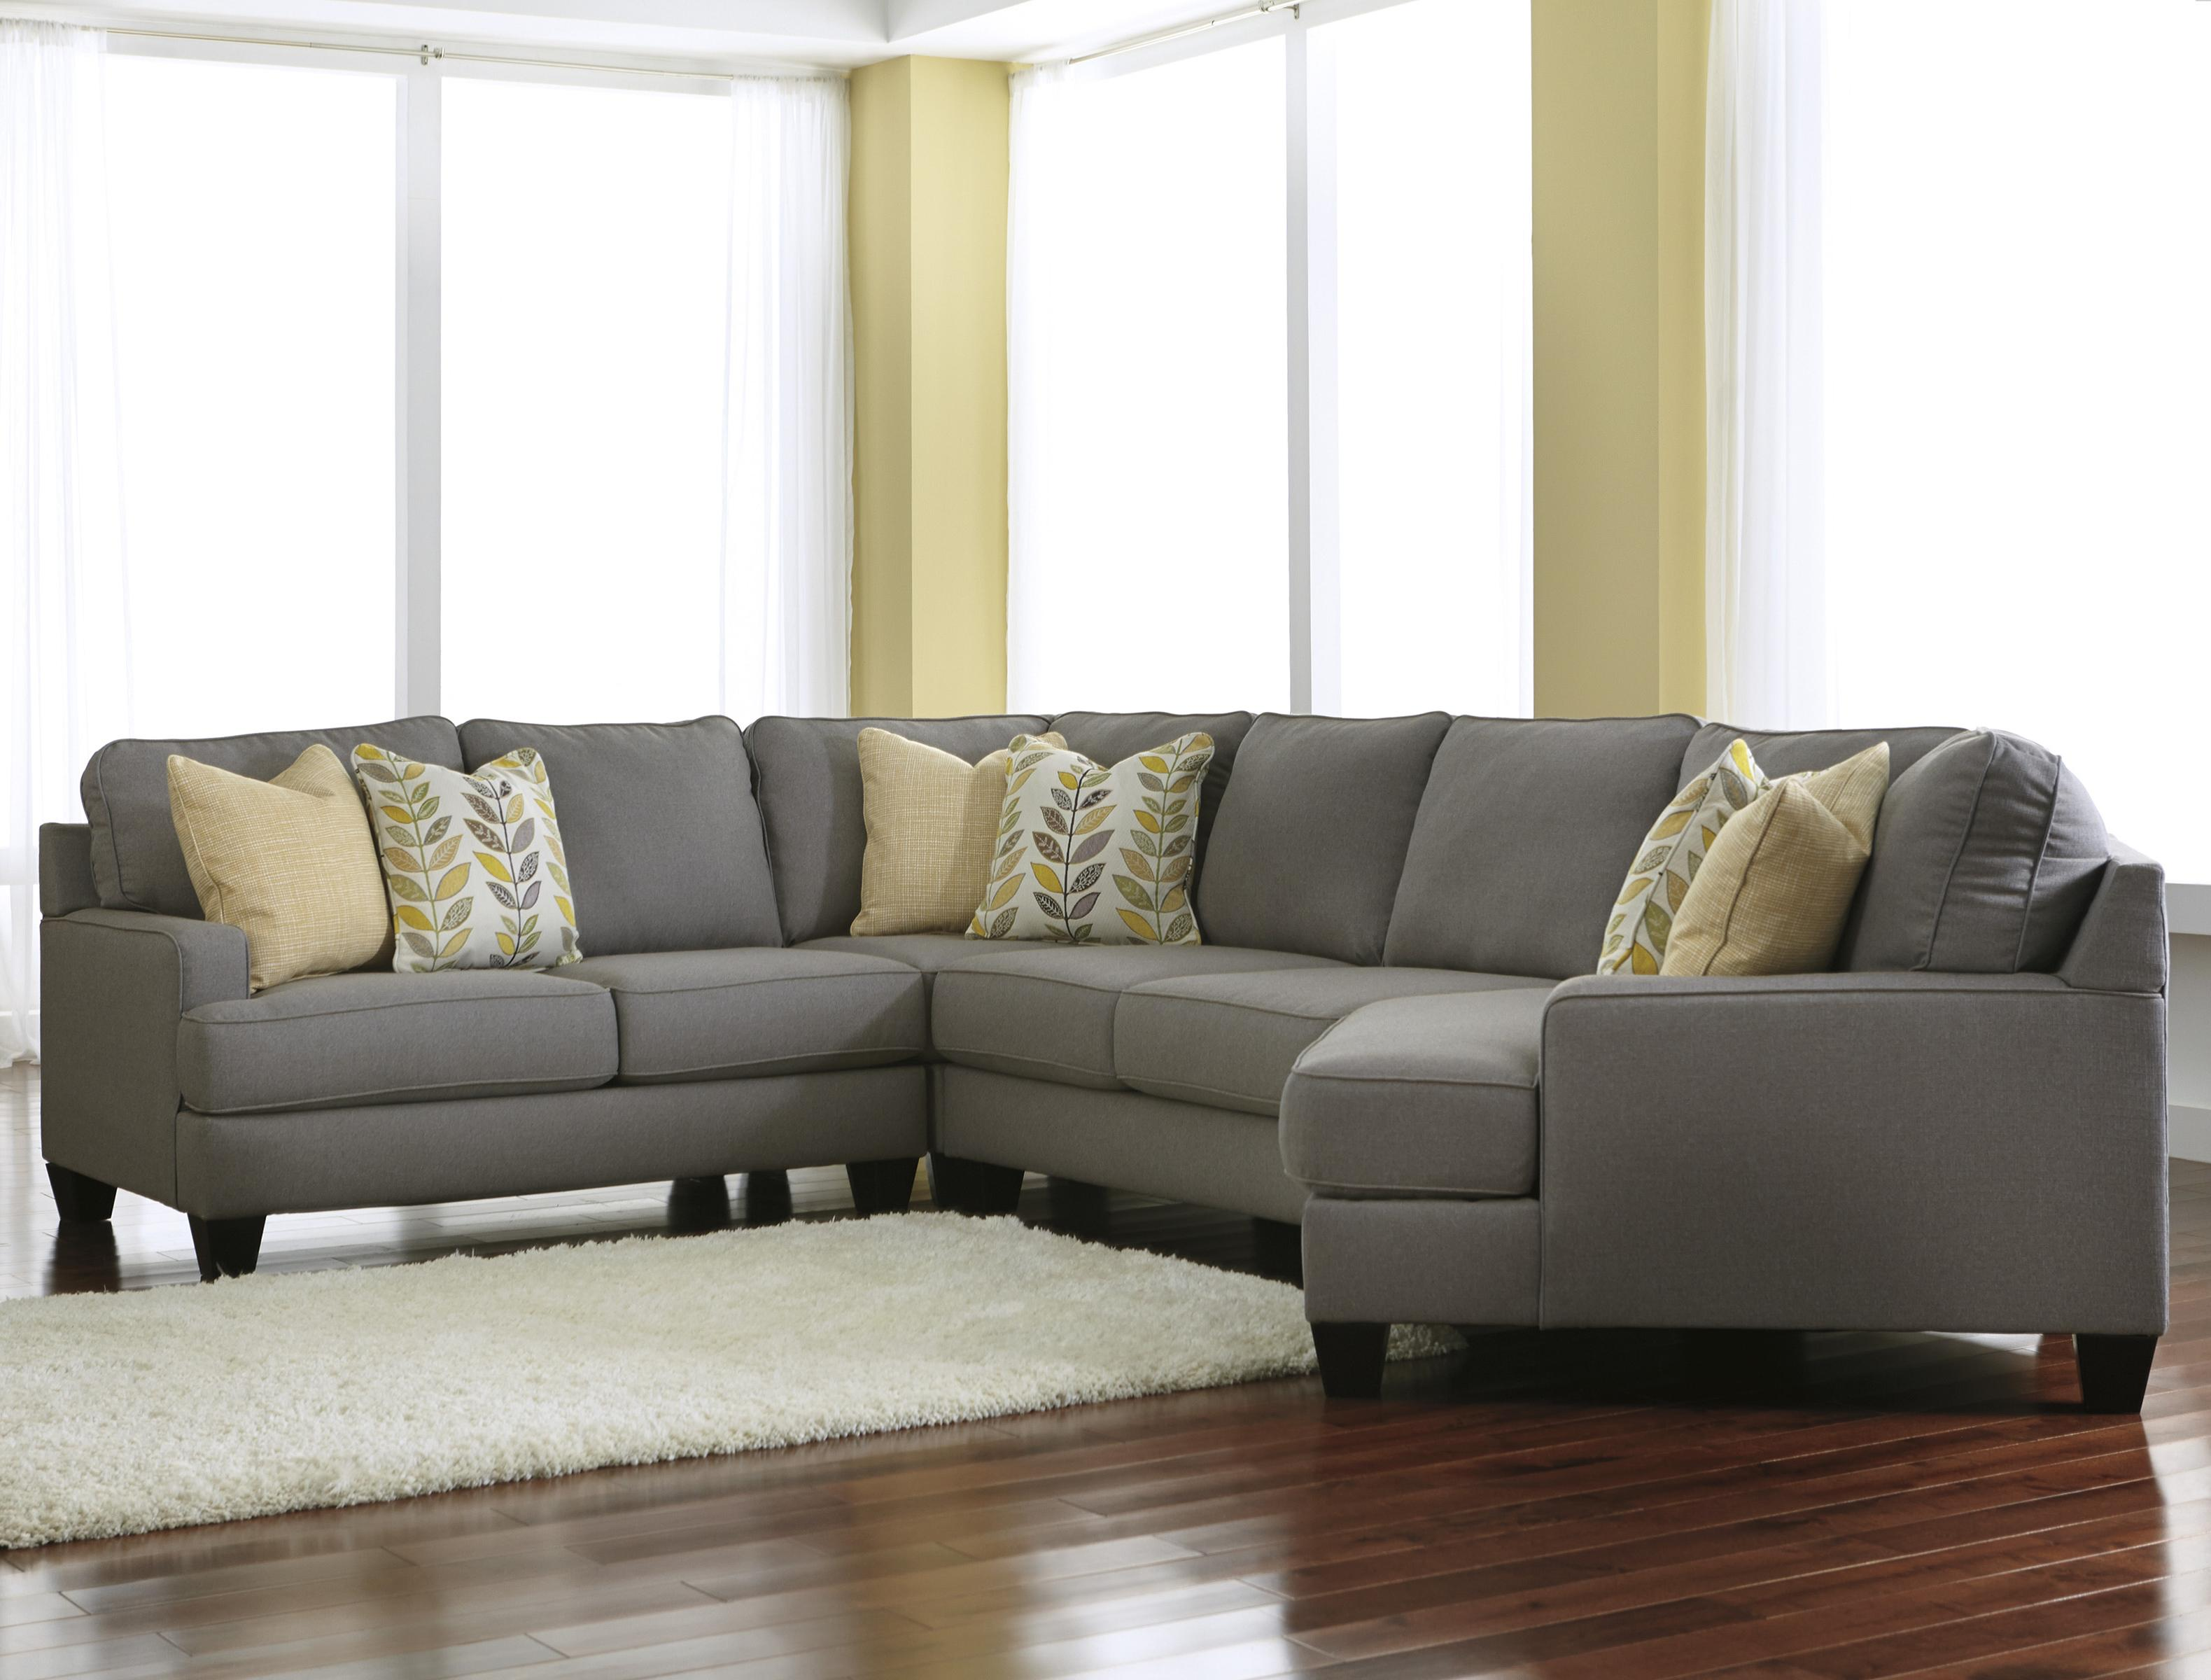 Signature Design By Ashley Chamberly   Alloy 4 Piece Sectional Sofa With  Right Cuddler